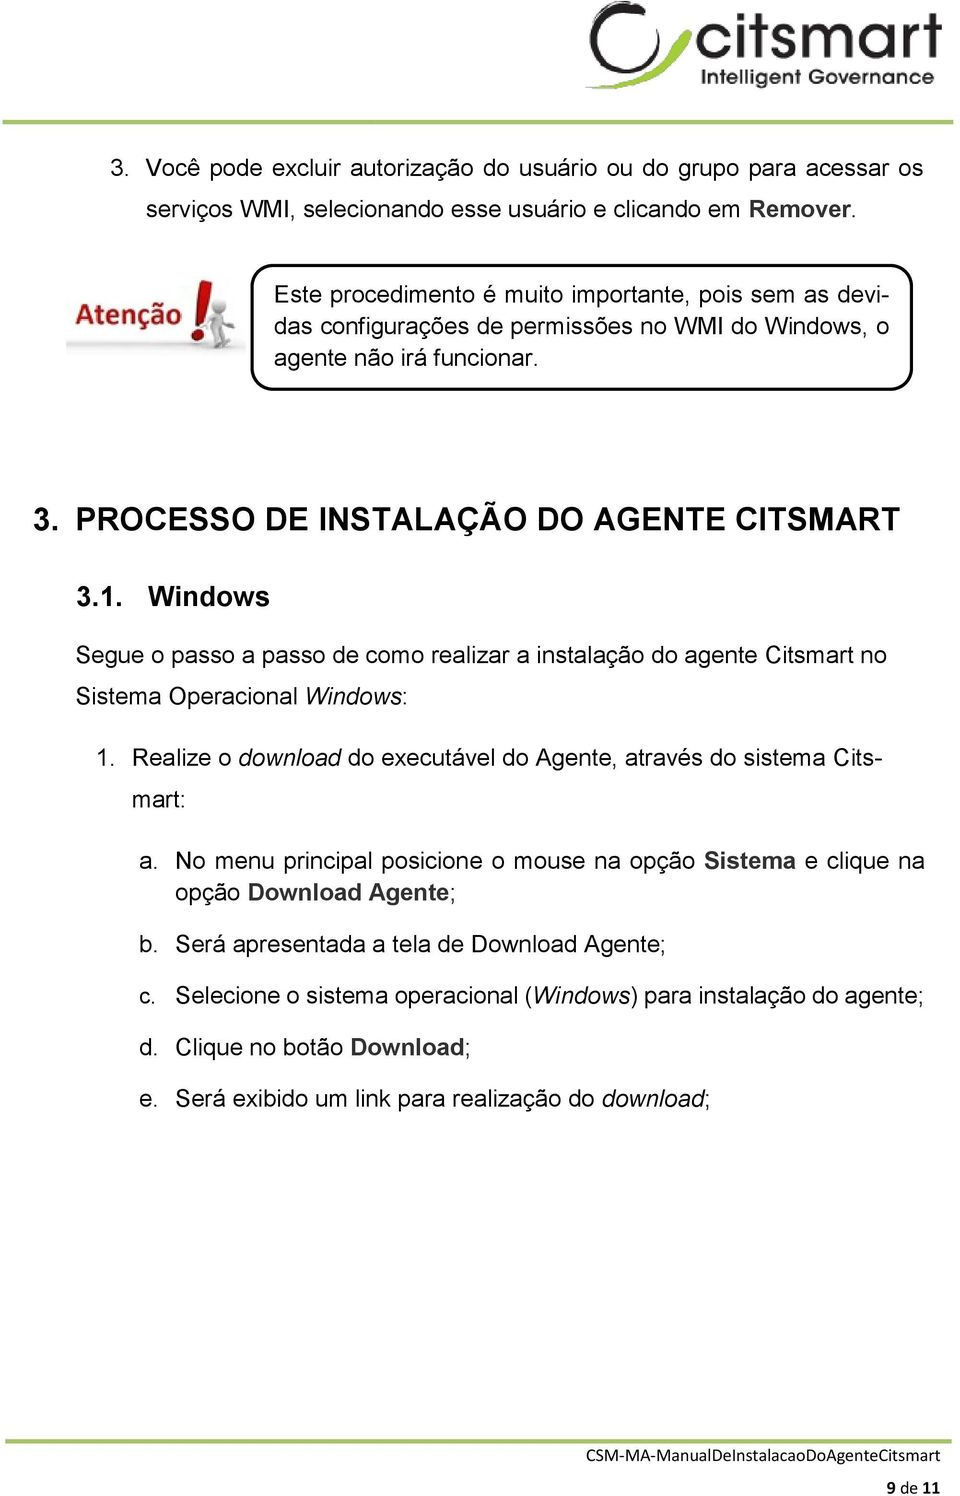 Windows Segue o passo a passo de como realizar a instalação do agente Citsmart no Sistema Operacional Windows: 1. Realize o download do executável do Agente, através do sistema Citsmart: a.